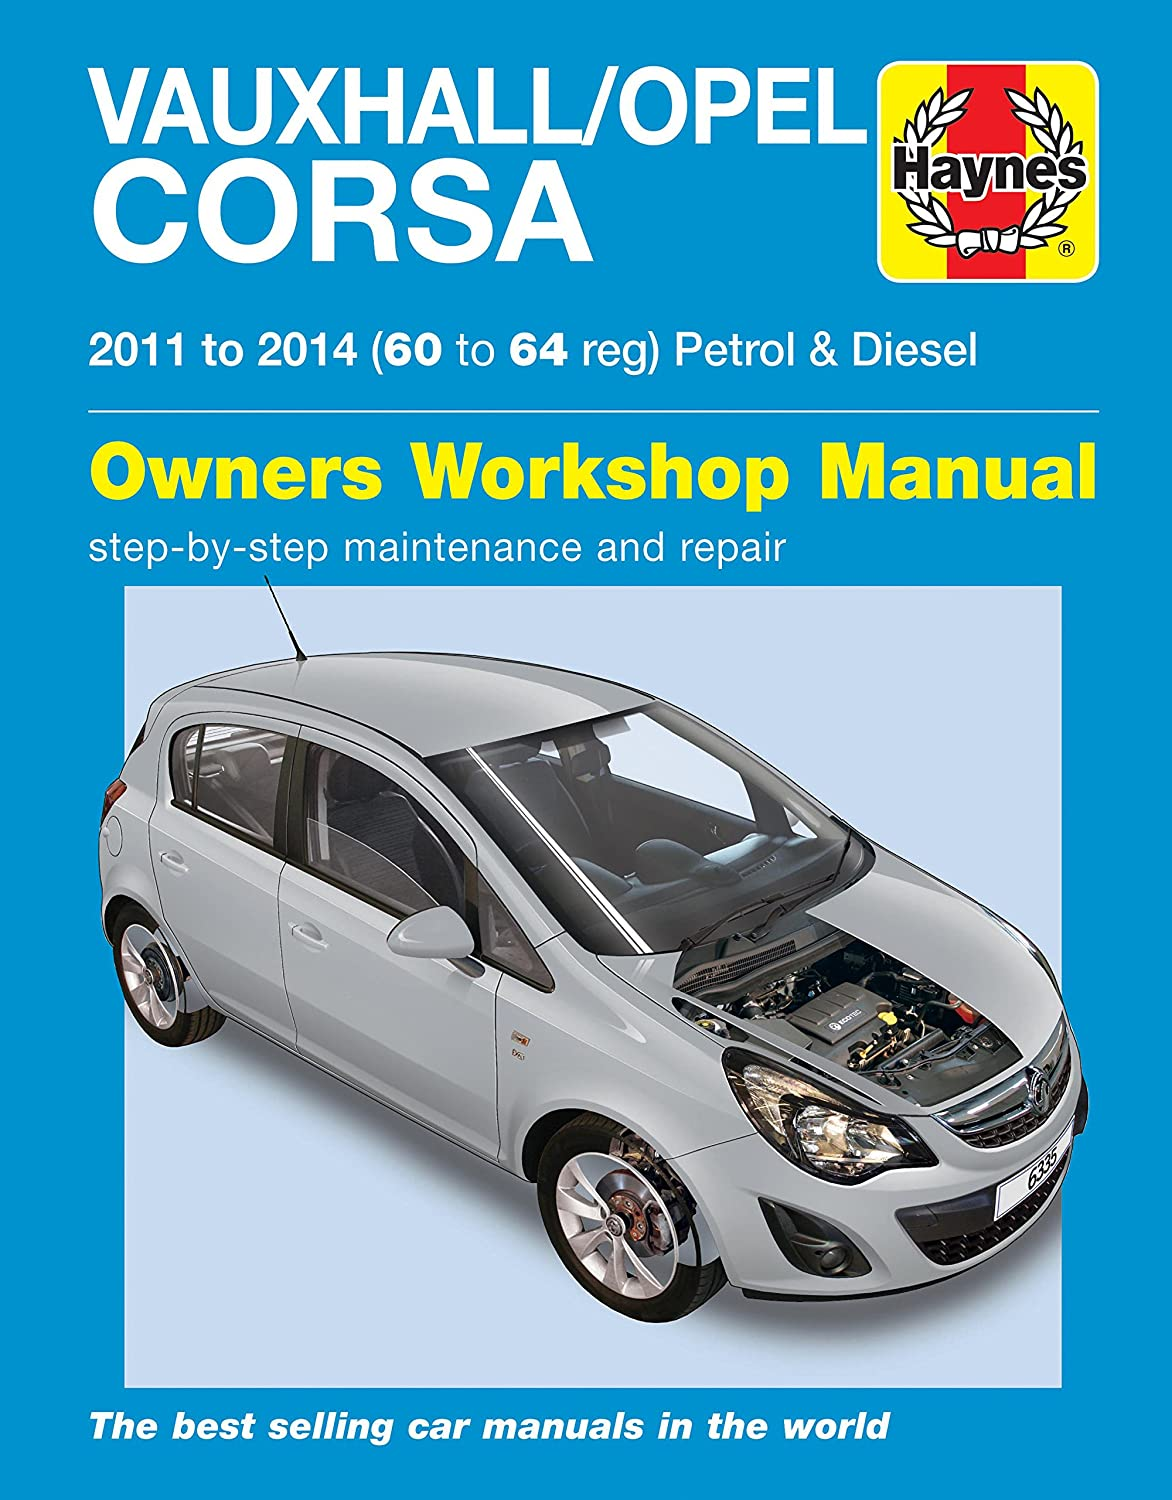 Vauxhall Corsa Repair Manual Haynes Manual Service Manual Workshop Manual  2011-2014: Amazon.co.uk: Car & Motorbike